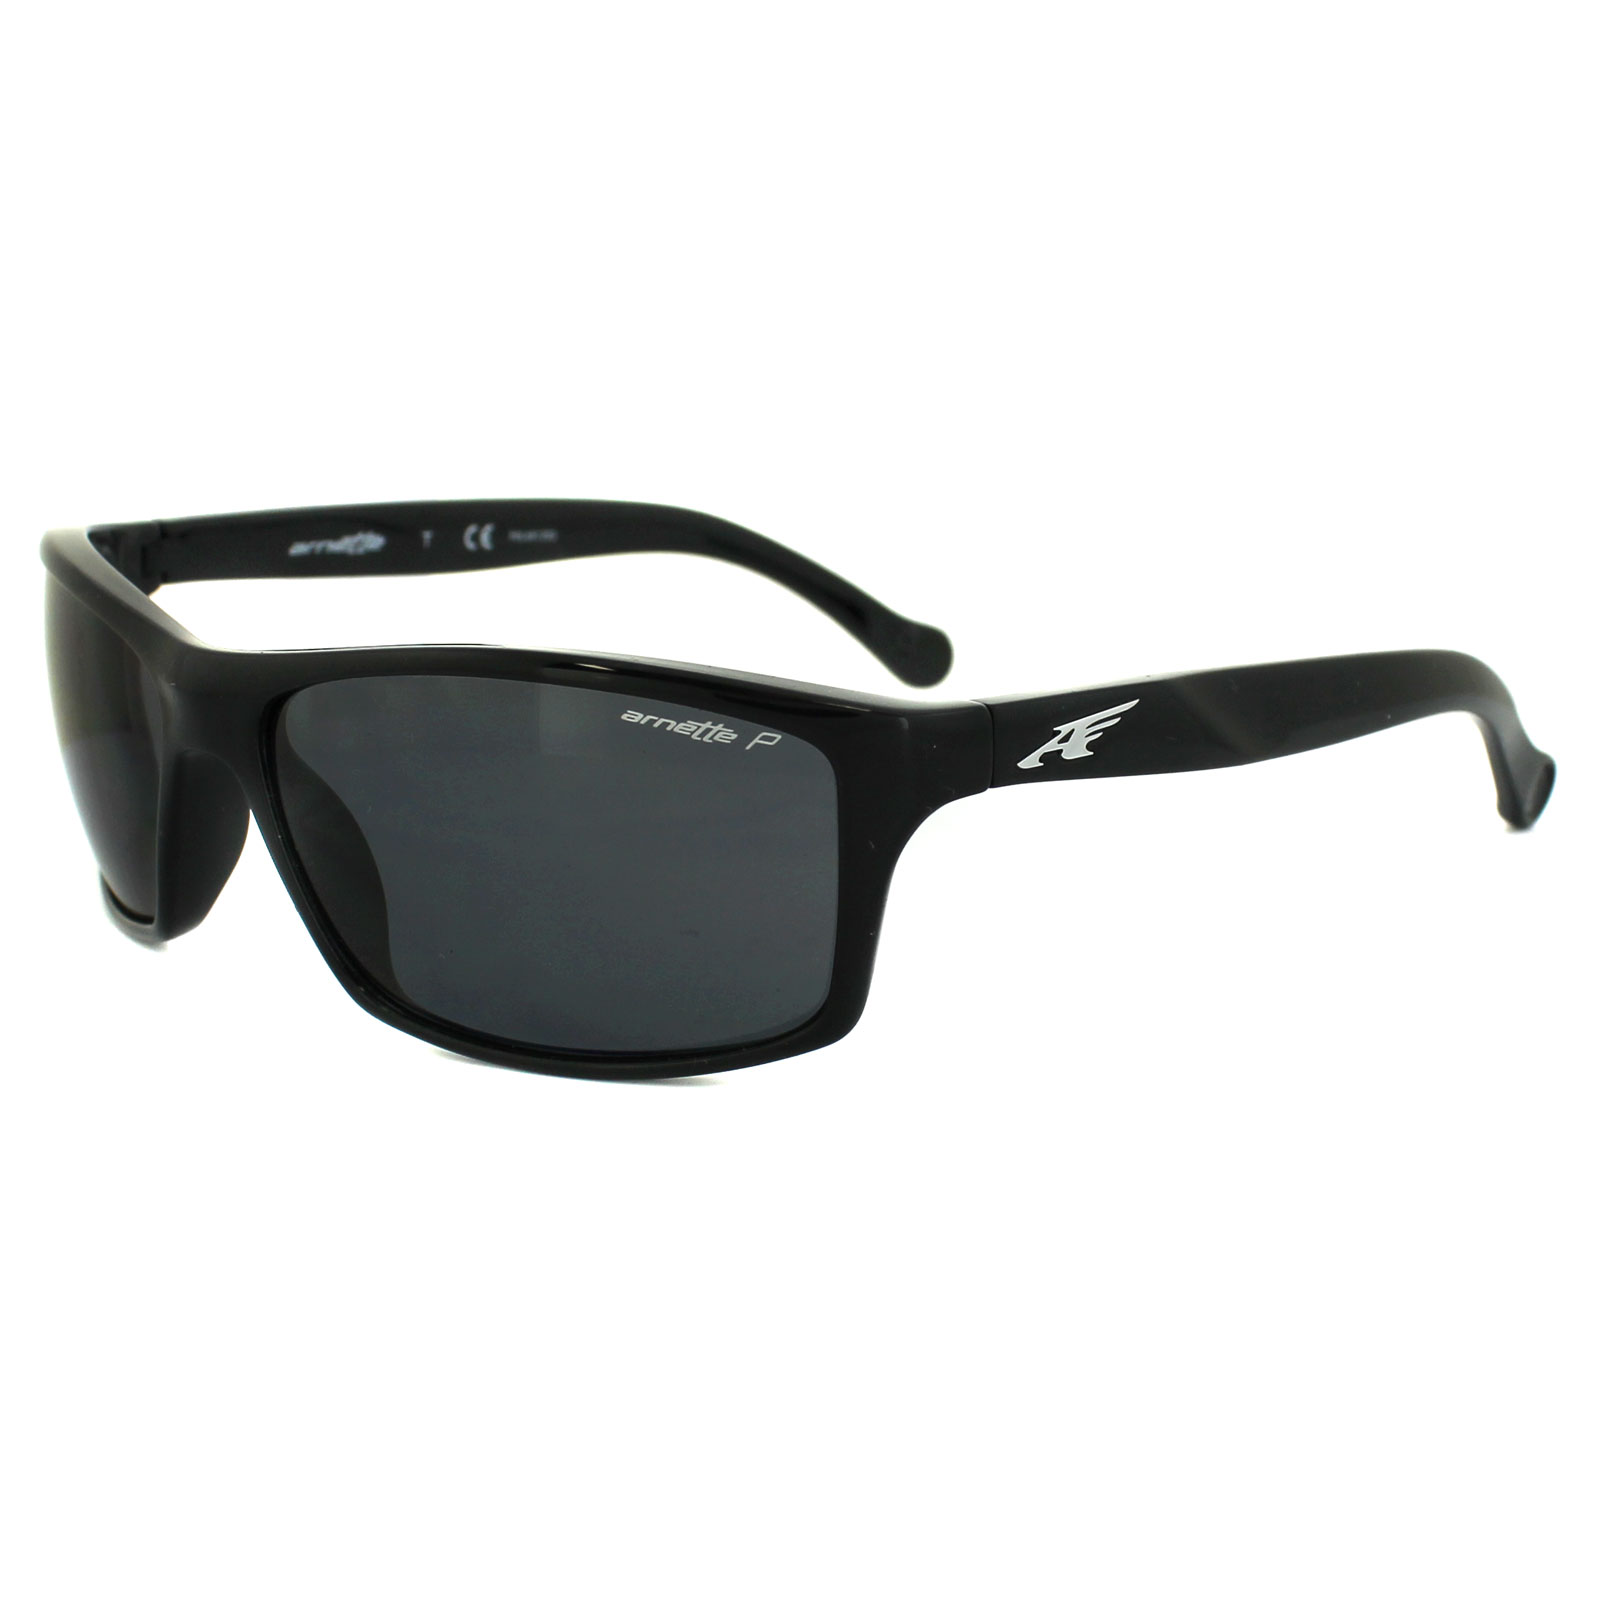 Arnette Sunglasses Review  arnette sunglasses 4207 boiler 41 81 black grey polarized ebay